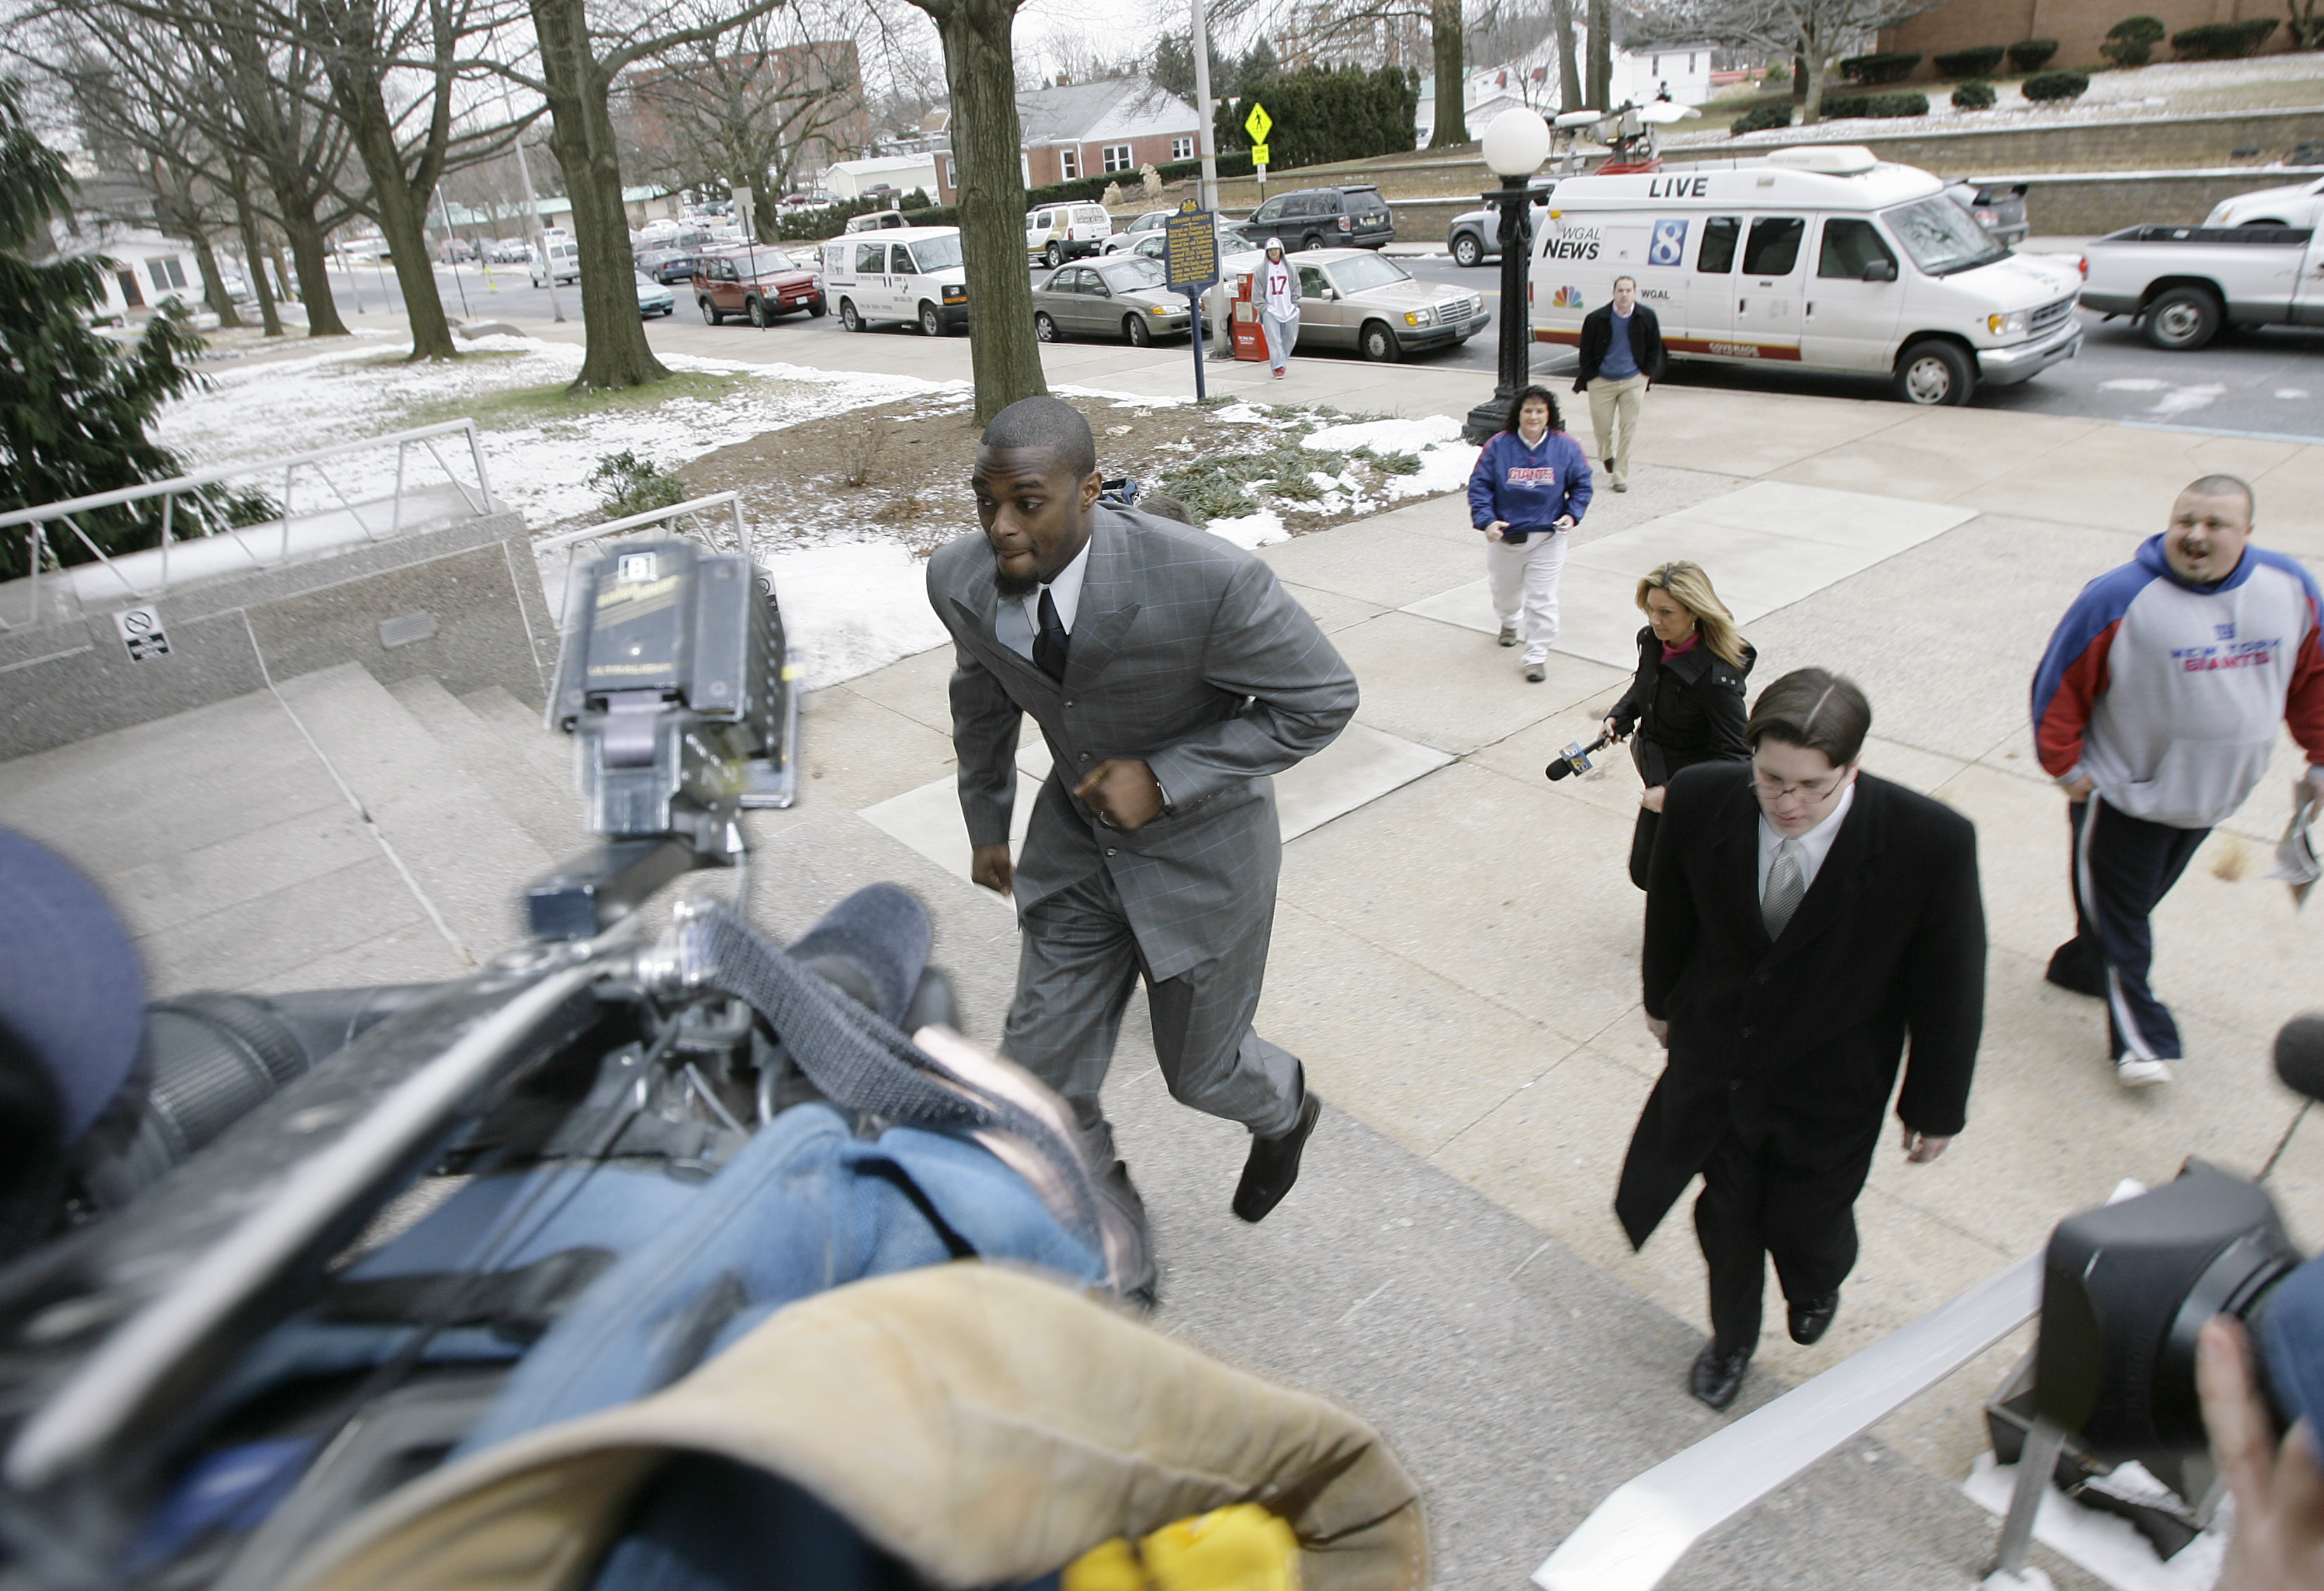 LEBANON - JANUARY 14: New York Giants wide receiver Plaxico Burress runs up the front steps toward members of the media as he arrives at the Lebanon County Courthouse January 14, 2009 in Lebanon, Pa.  Burress is scheduled to appear in a civil trial in a d